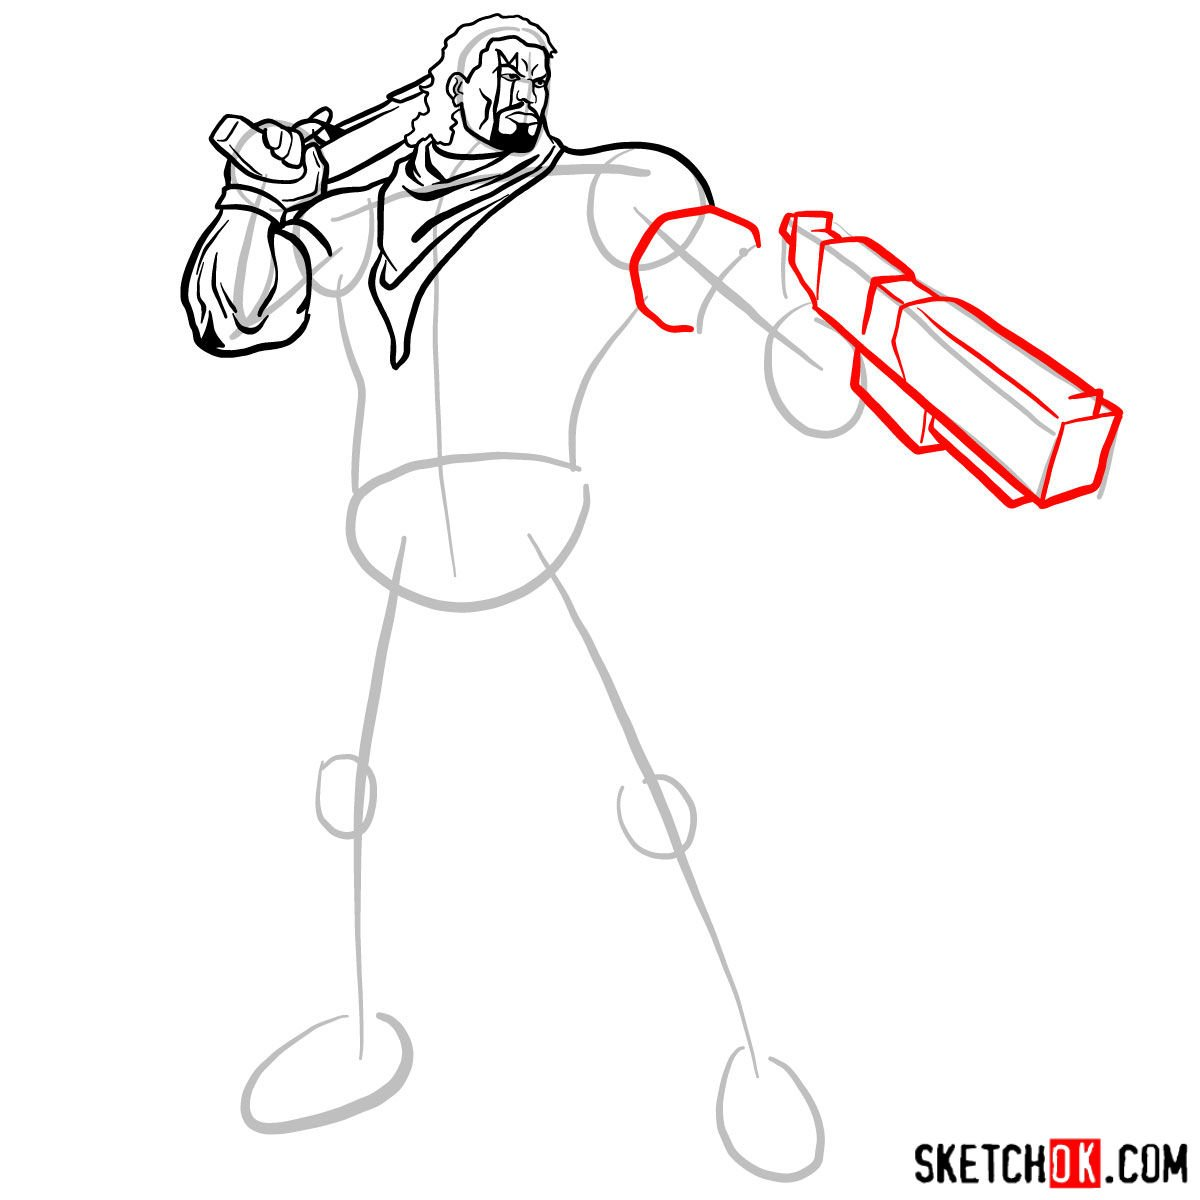 How to draw Lucas Bishop, a mutant from X-Men series - step 09